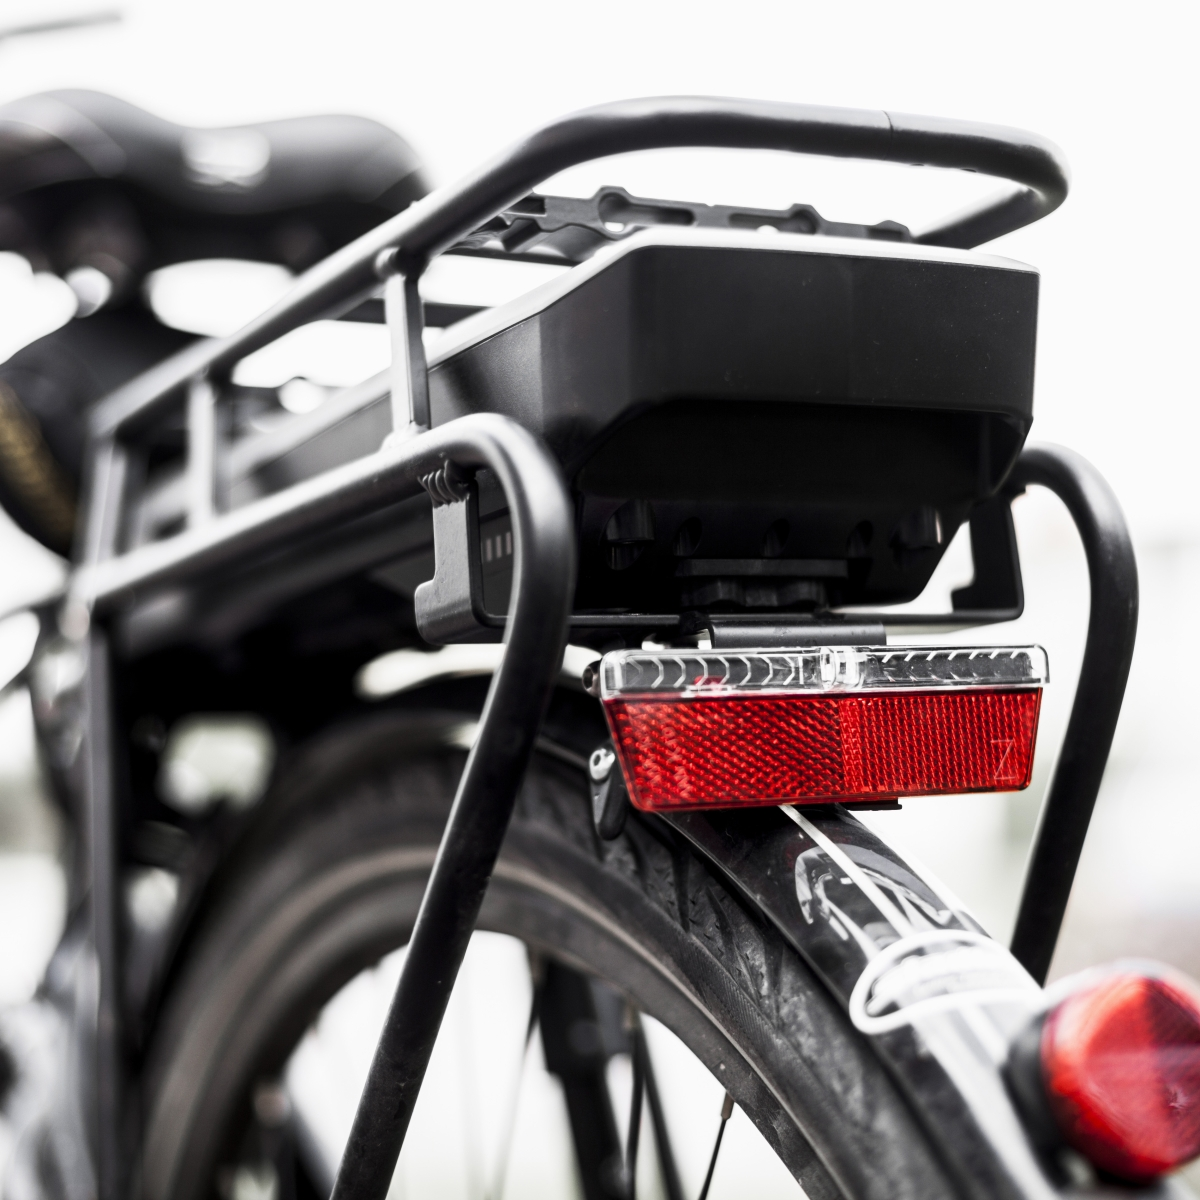 Convert Any Bike Into a Battery-Powered E-Bike - Men's Journal